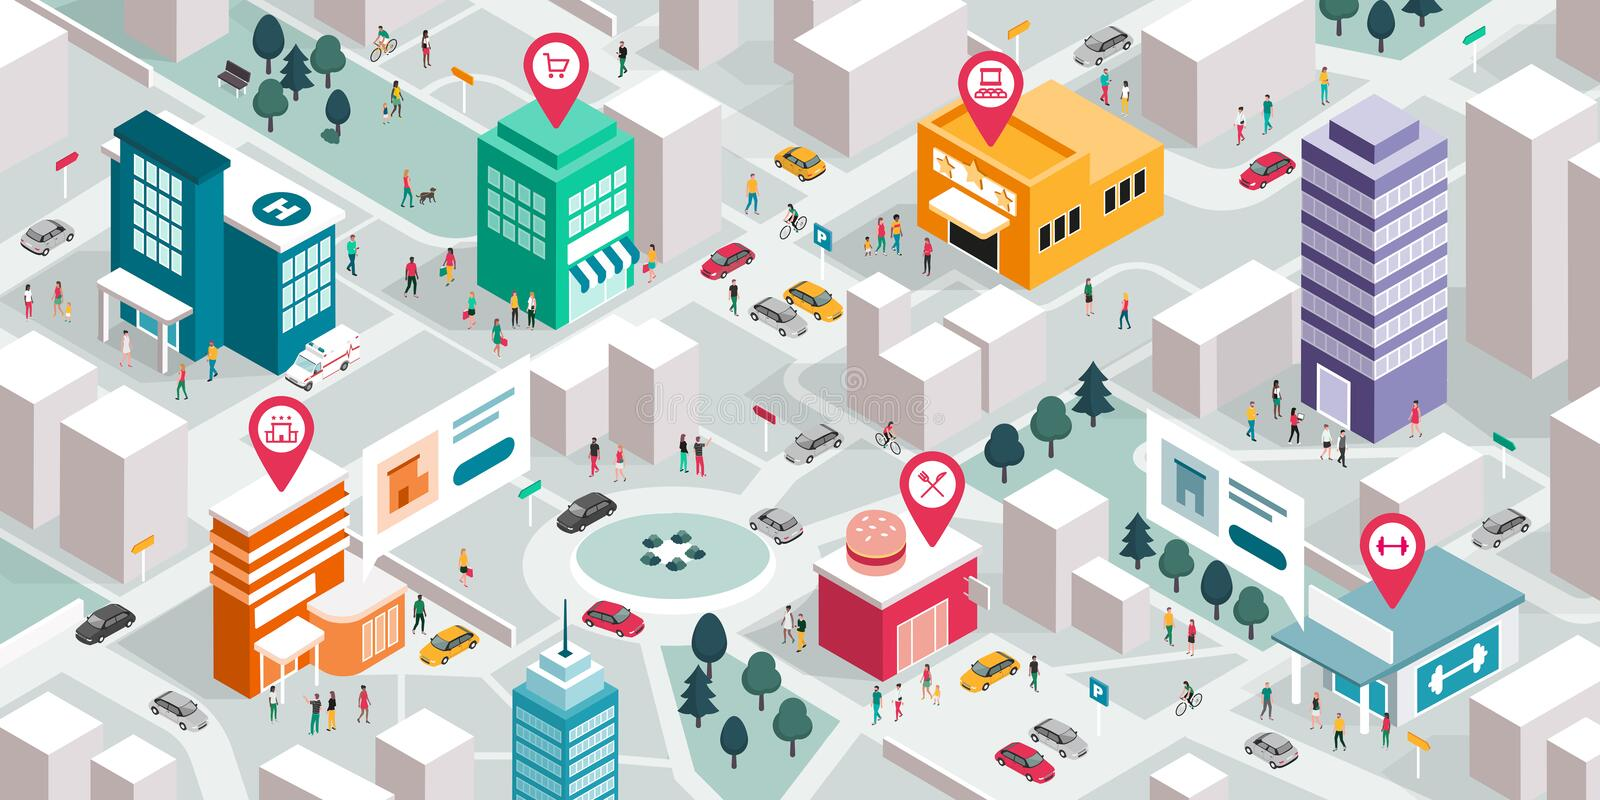 Isometric city map with people, buildings and pin pointers. Promote your local business and GPS navigation concept stock illustration